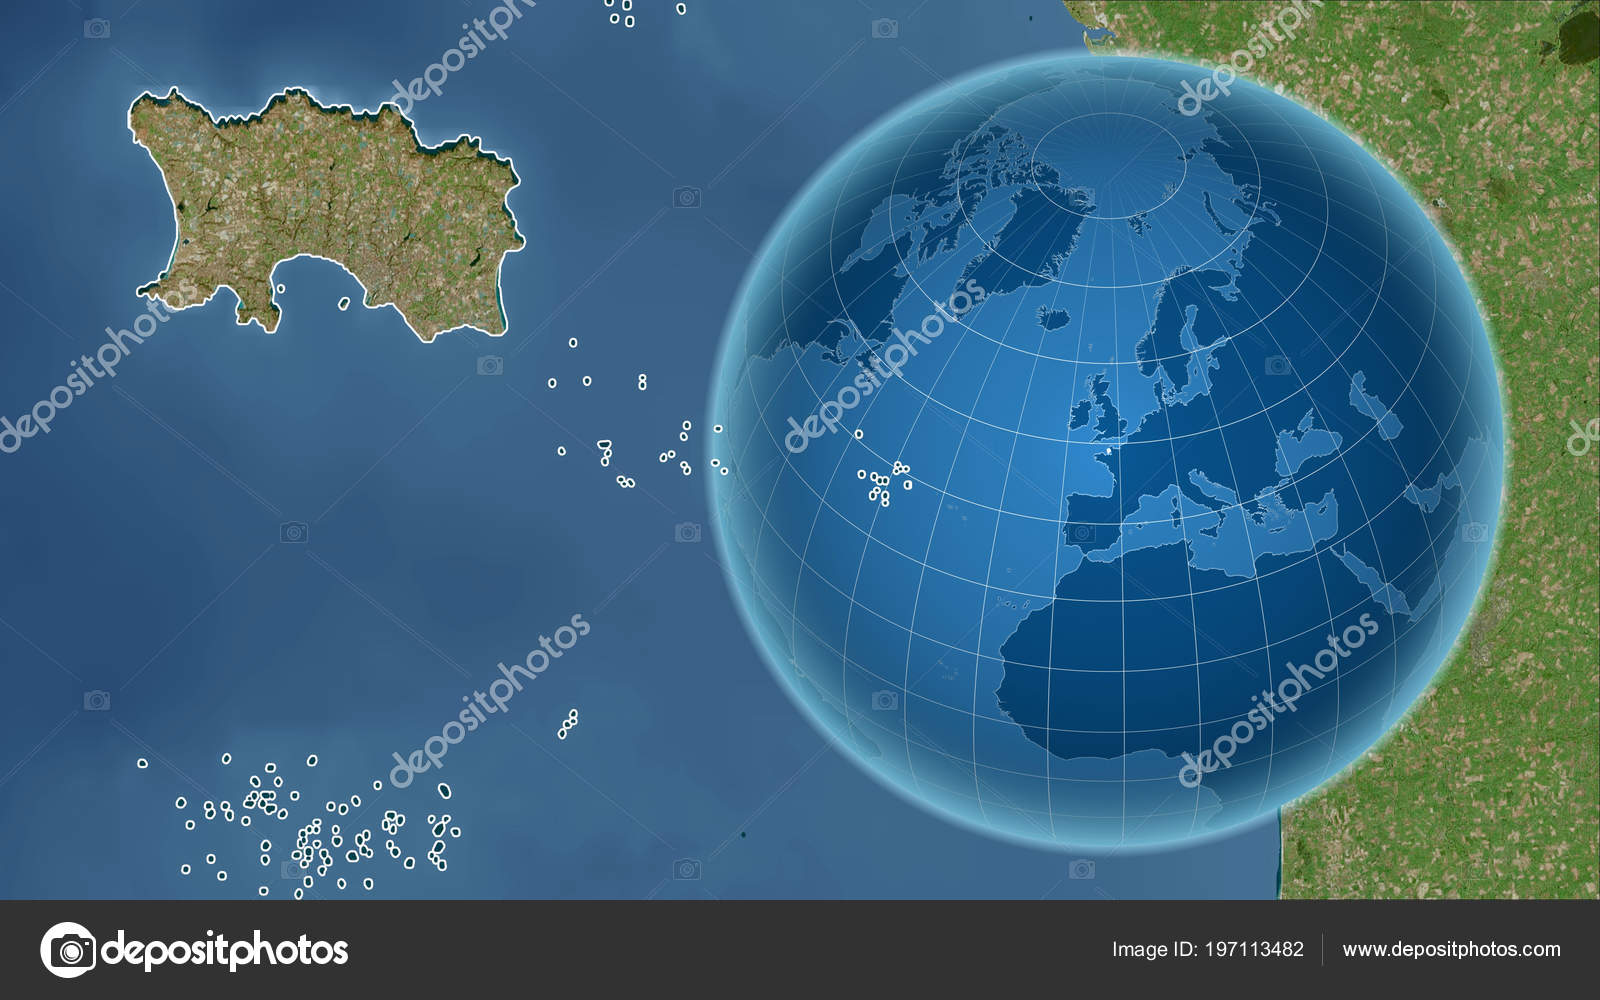 jersey globe shape country zoomed map its outline satellite imagery